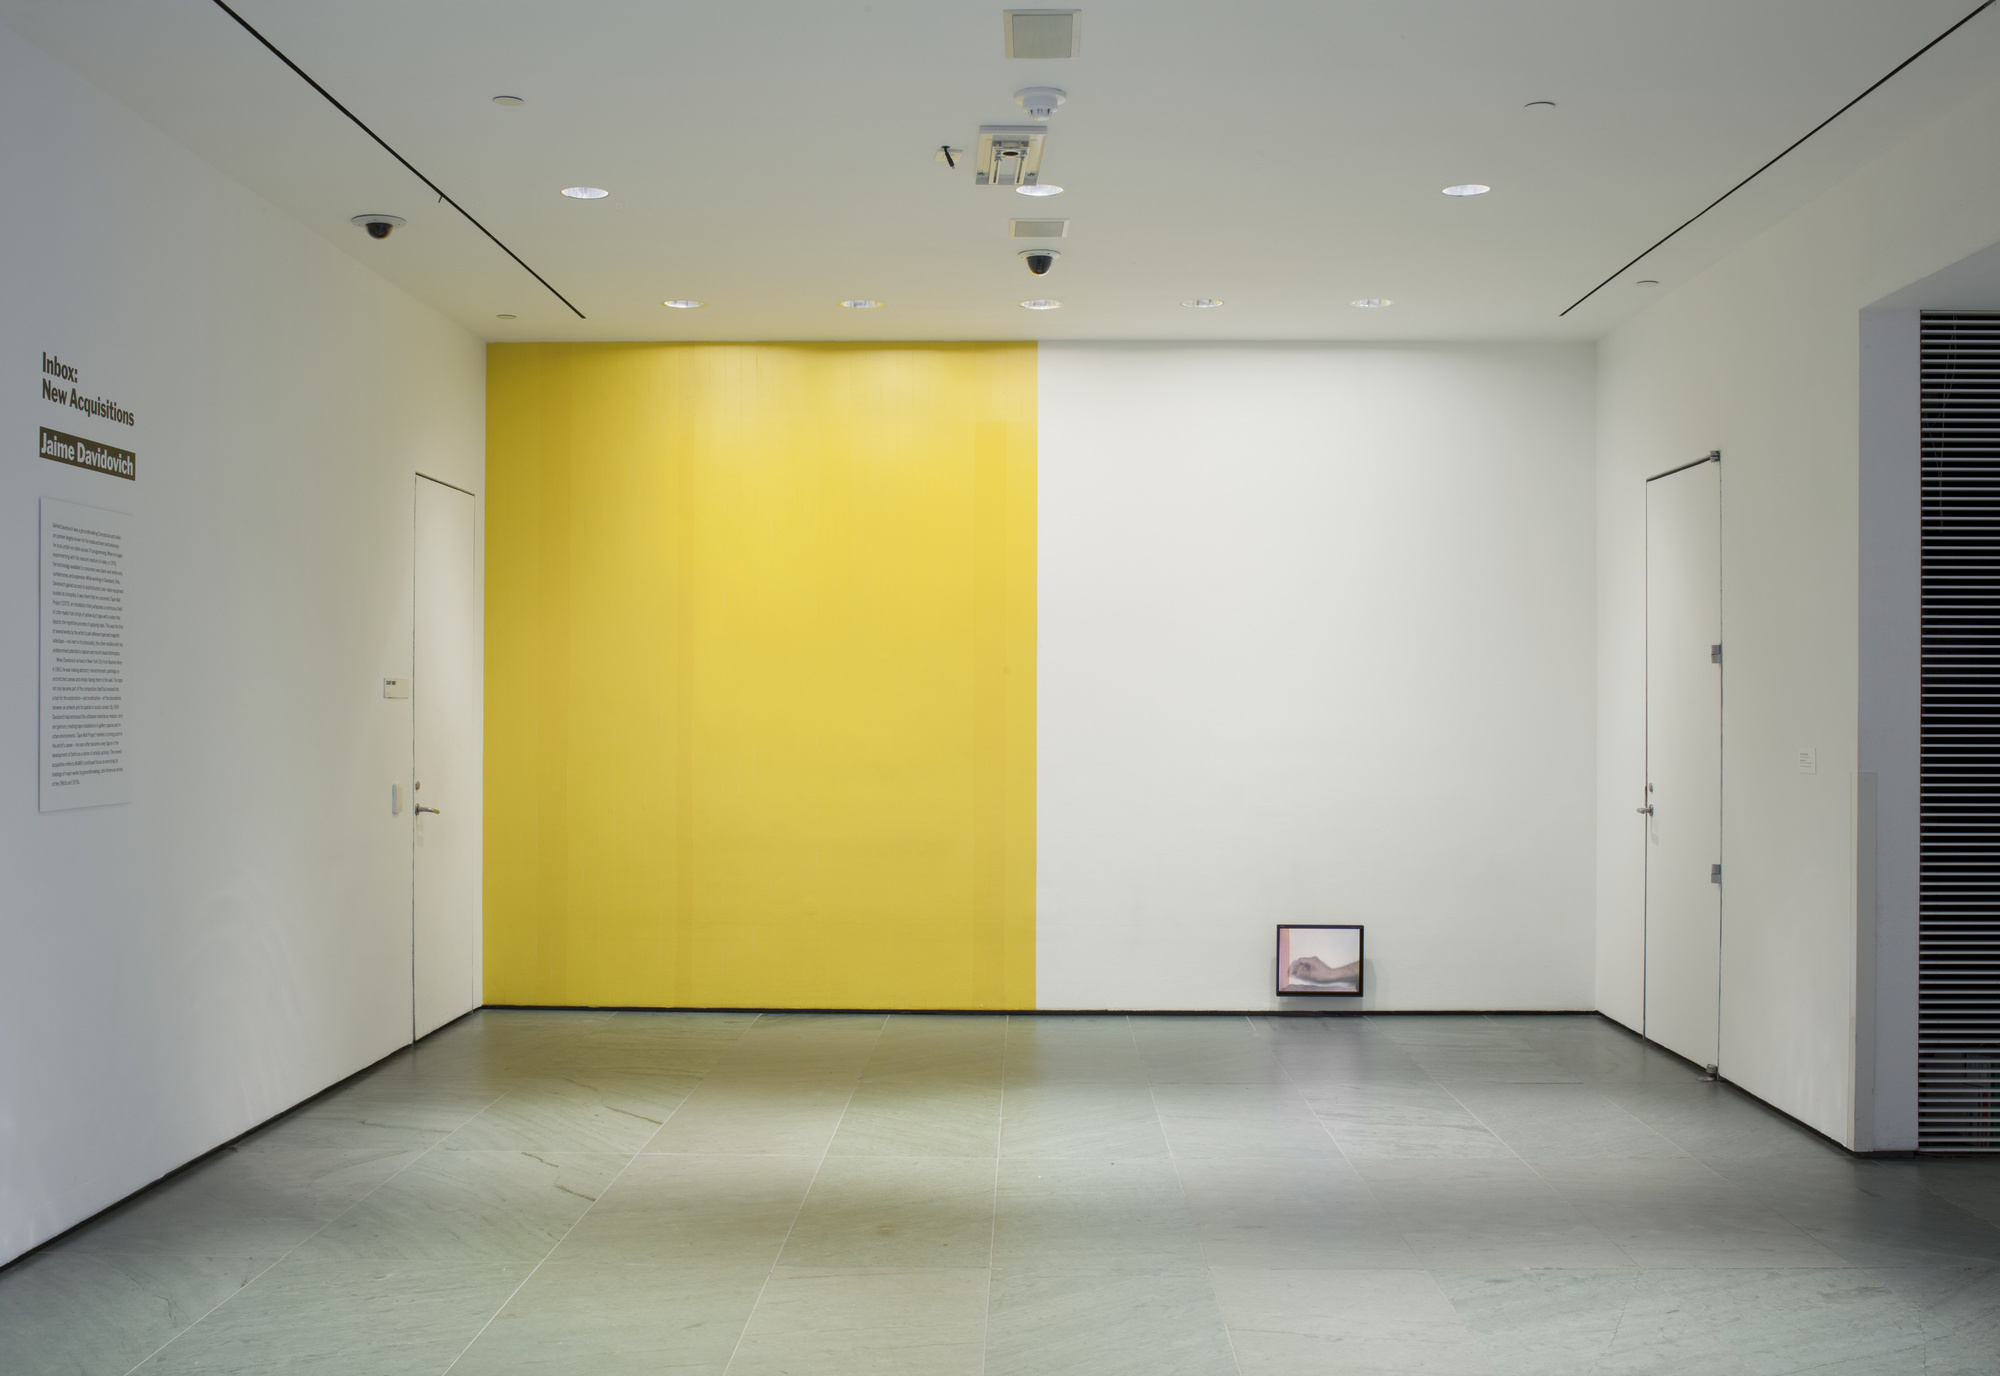 TAPE PROJECTS - Left: Jaime Davidovich, Tape Wall Project, 1970